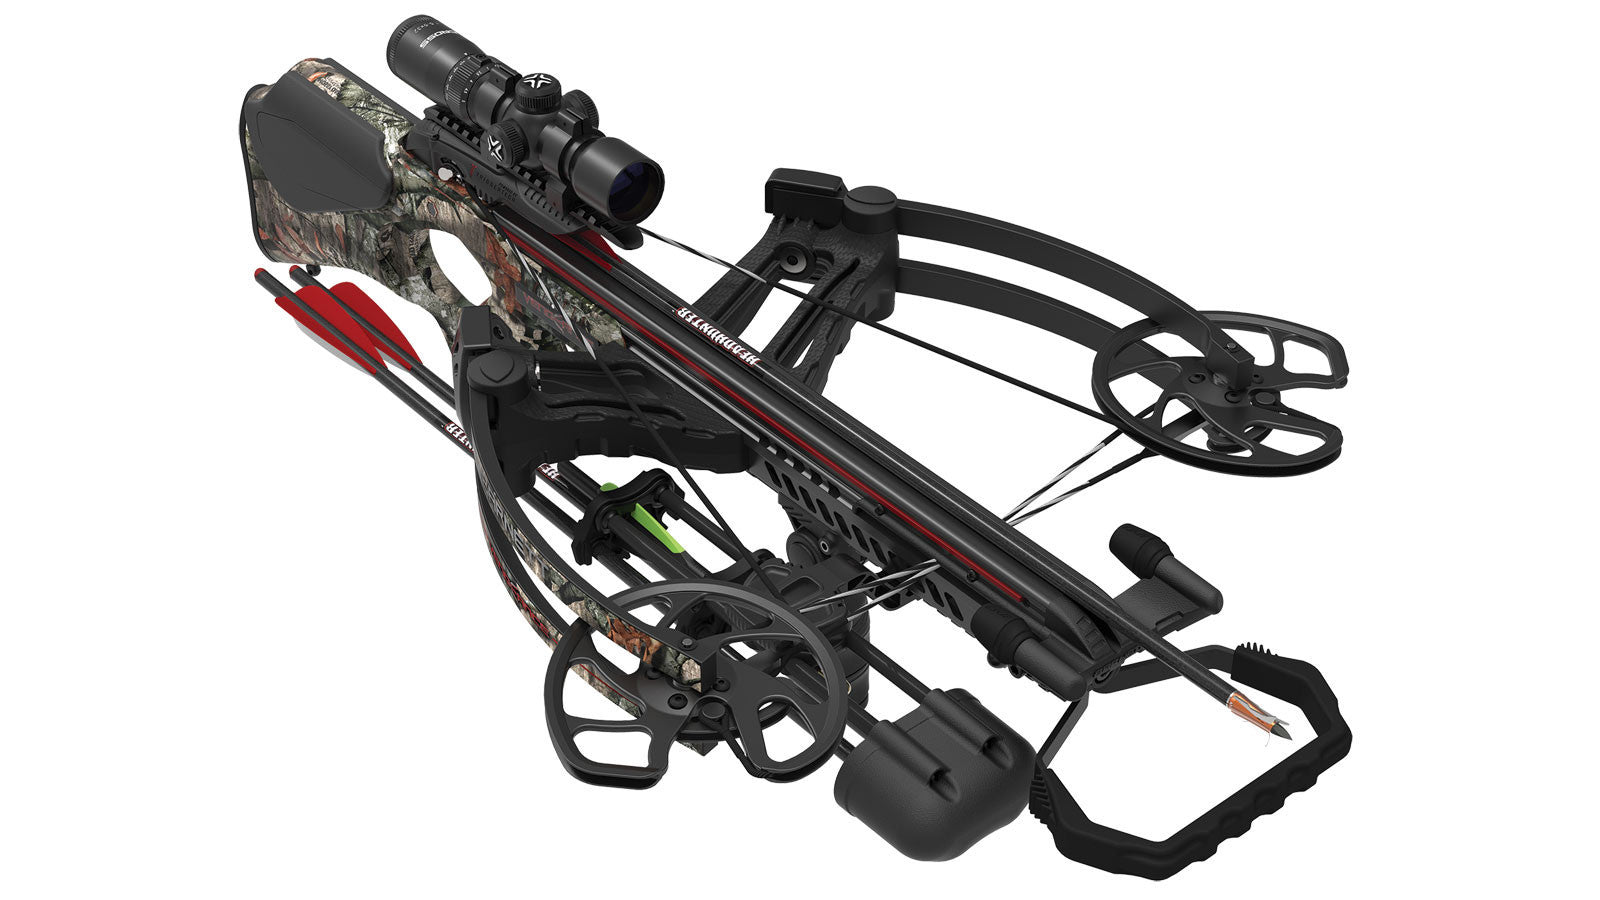 Barnett Vengeance 2 Crossbow with 3x32 Scope Mossy Oak Treestand